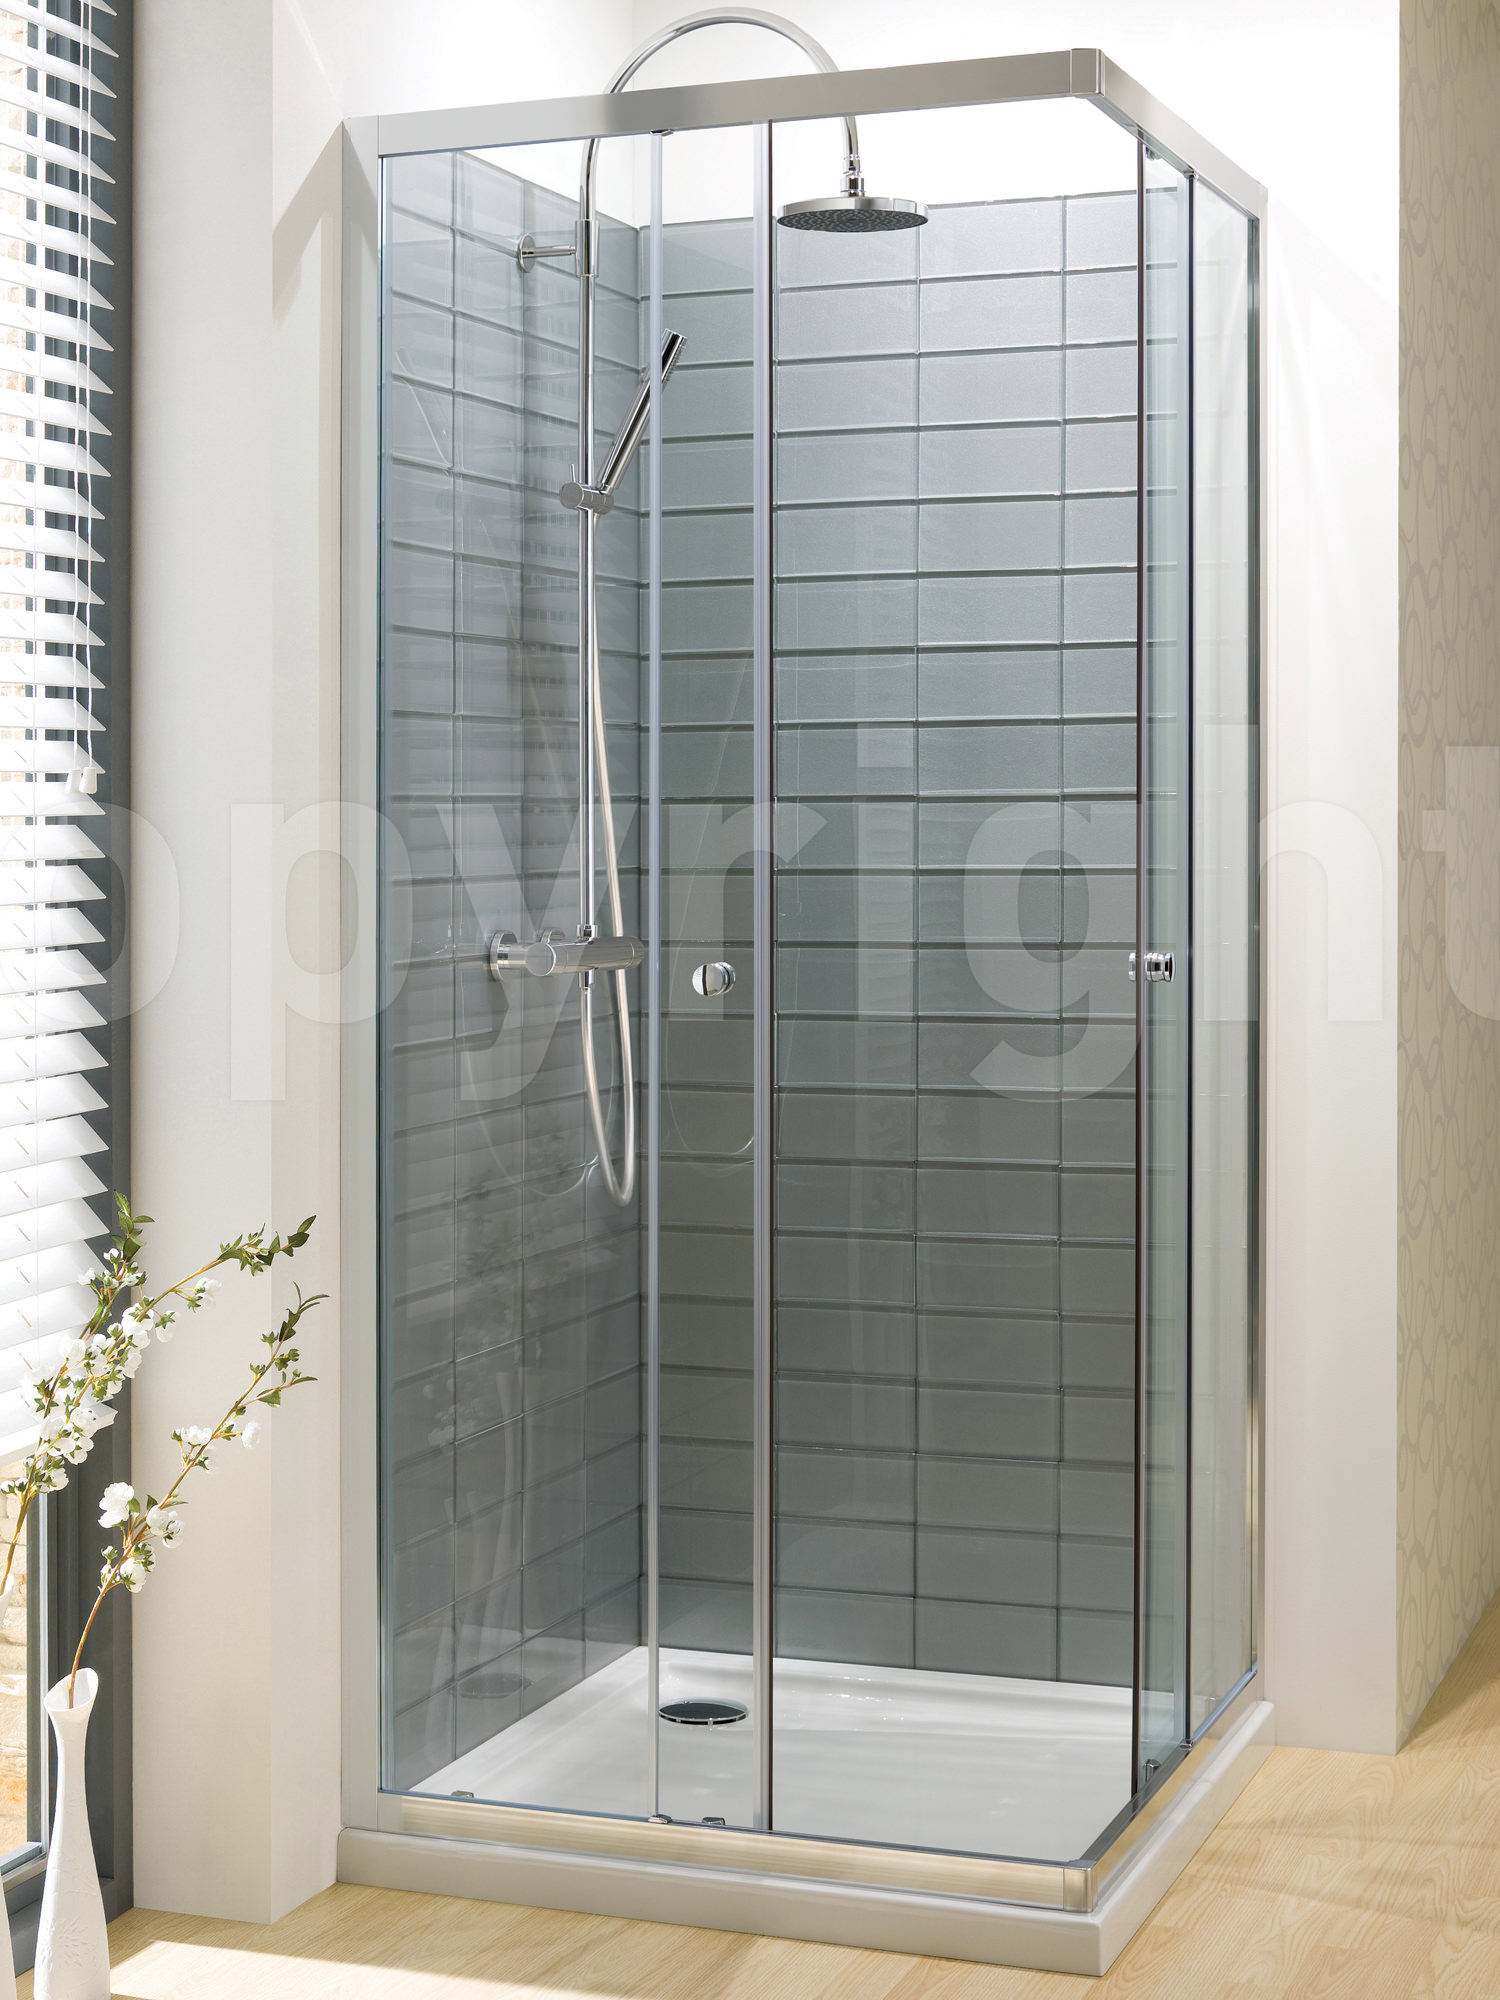 Simpsons edge corner entry shower enclosure 760mm Bathroom tile showers